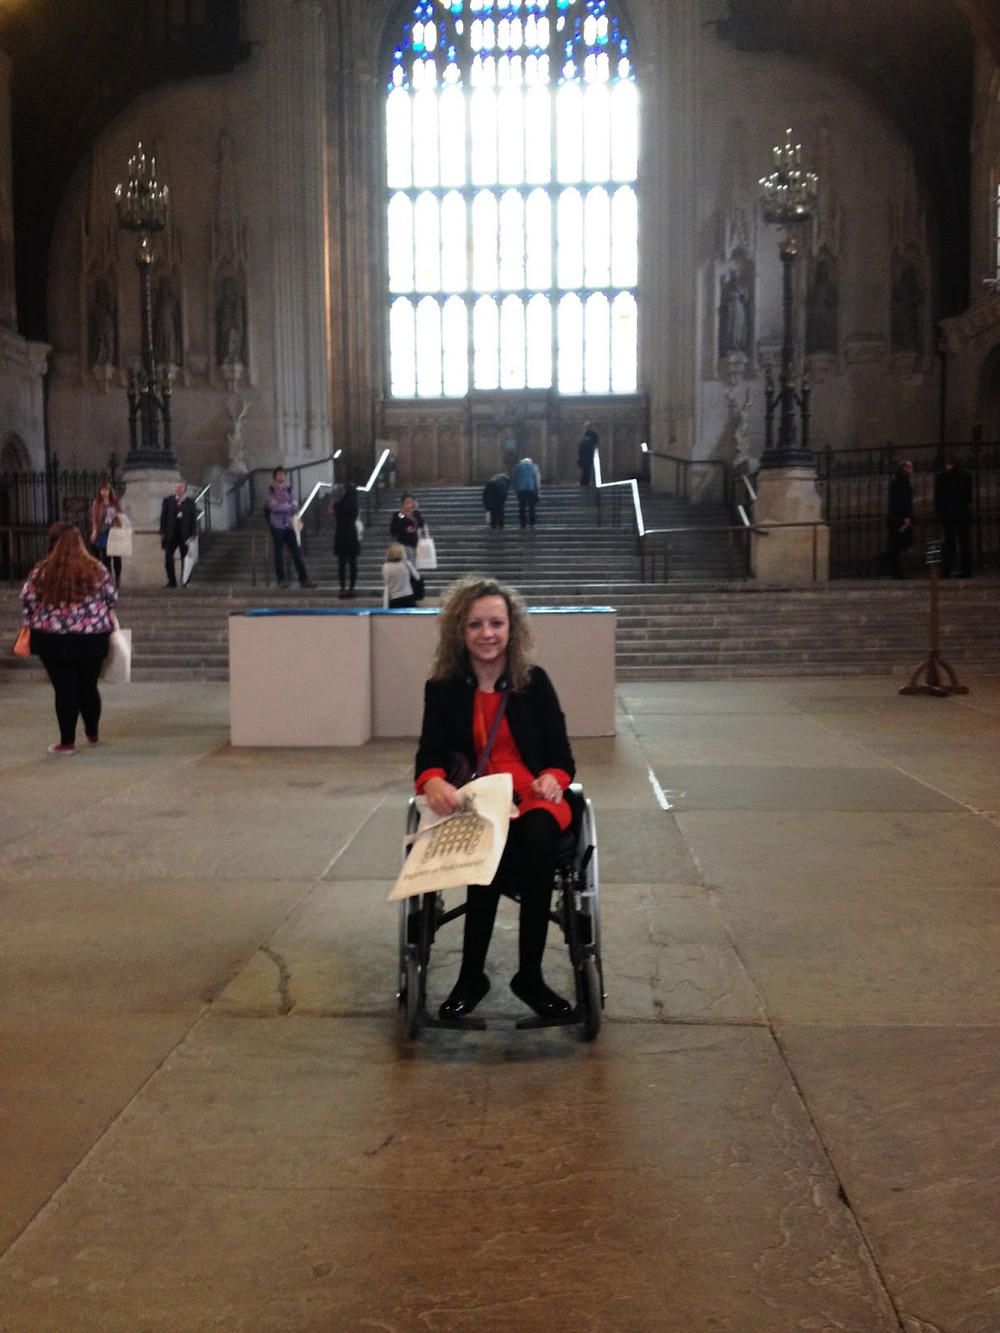 Carrie-Ann Lightley Disabled Travel Blogger Visiting Parliament's Great Hall